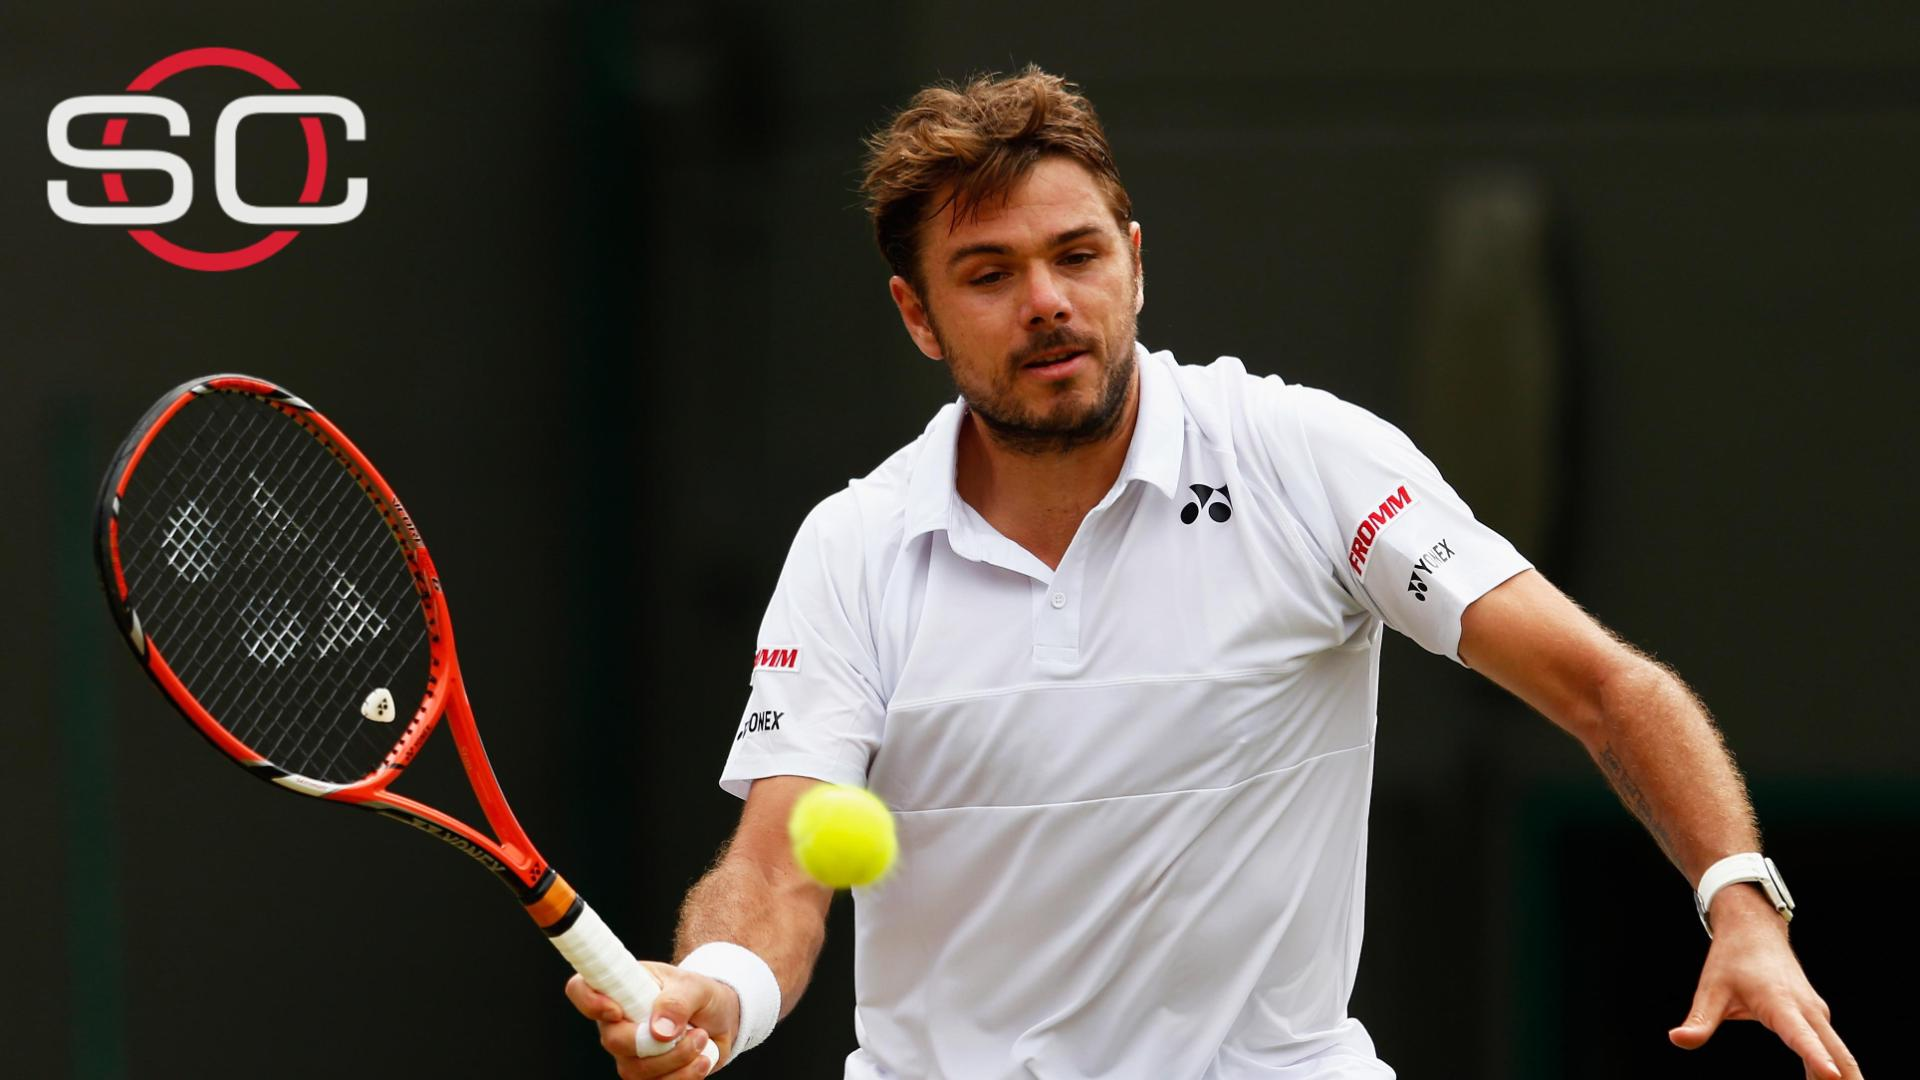 Wawrinka wins in straight sets